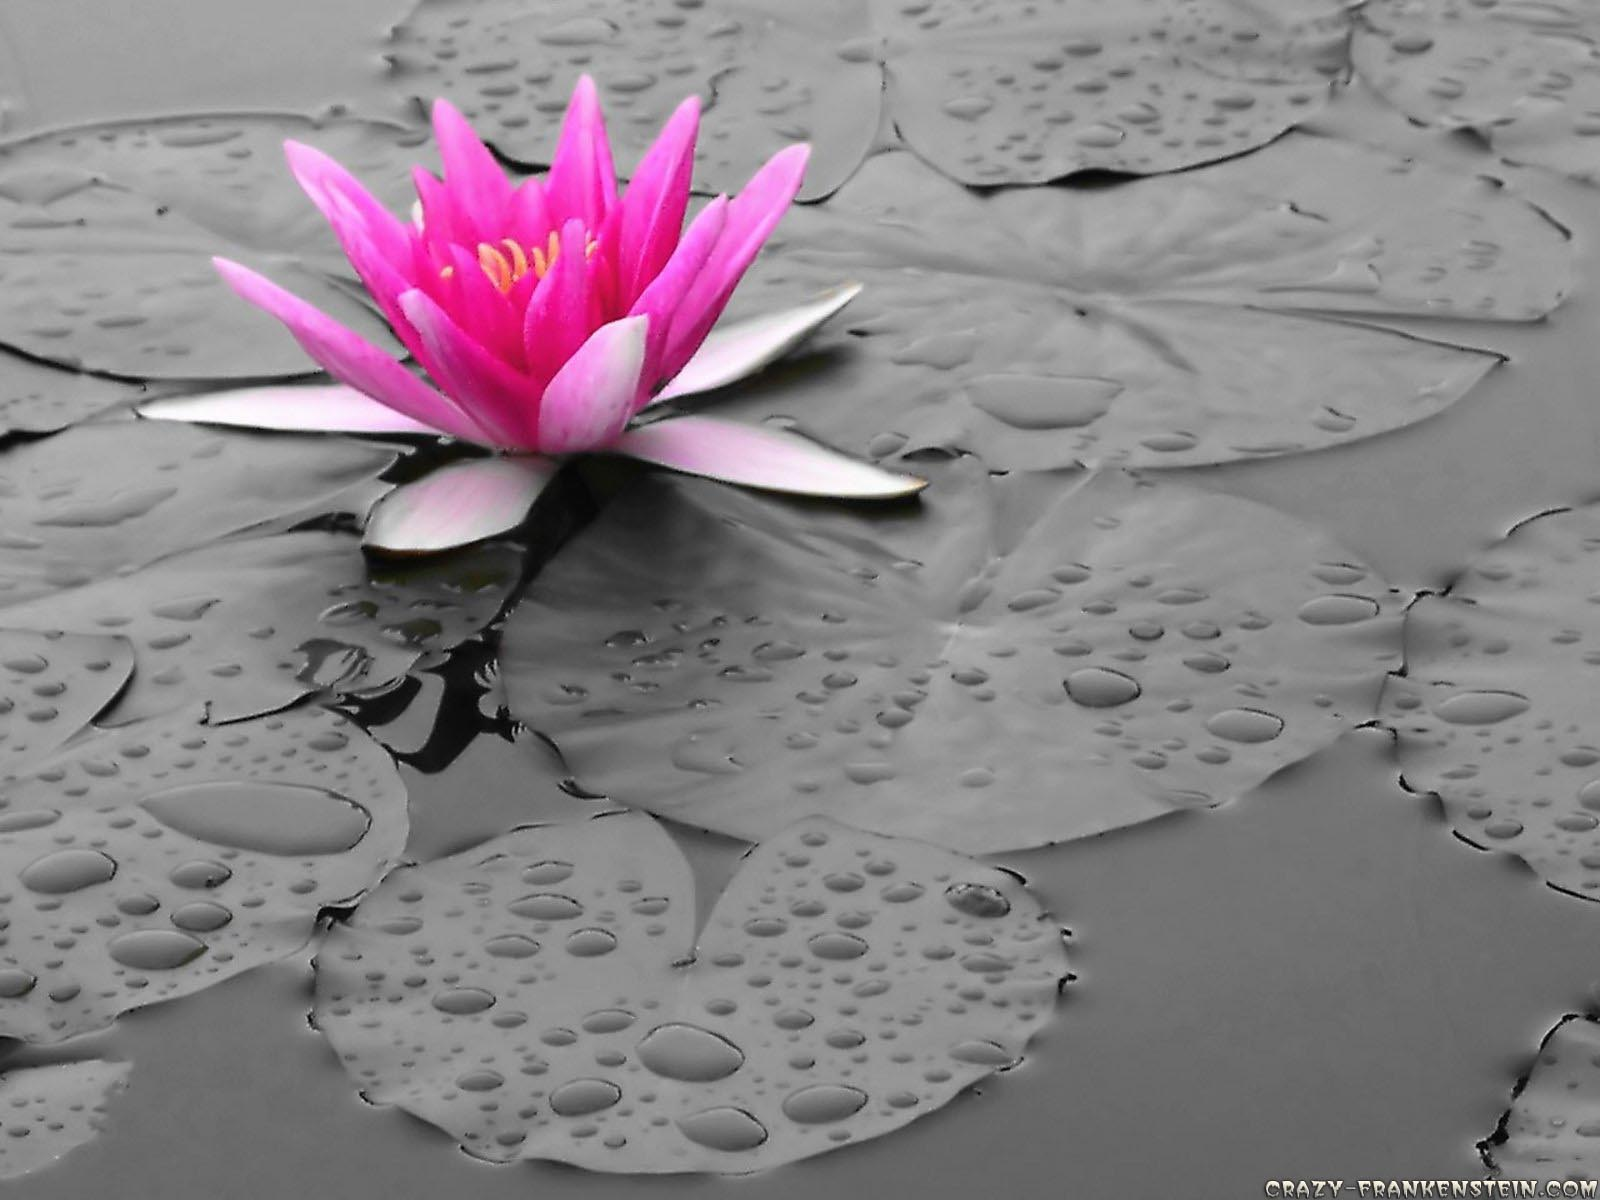 Pink+Lily+Flower+Wallpapers+1.jpg